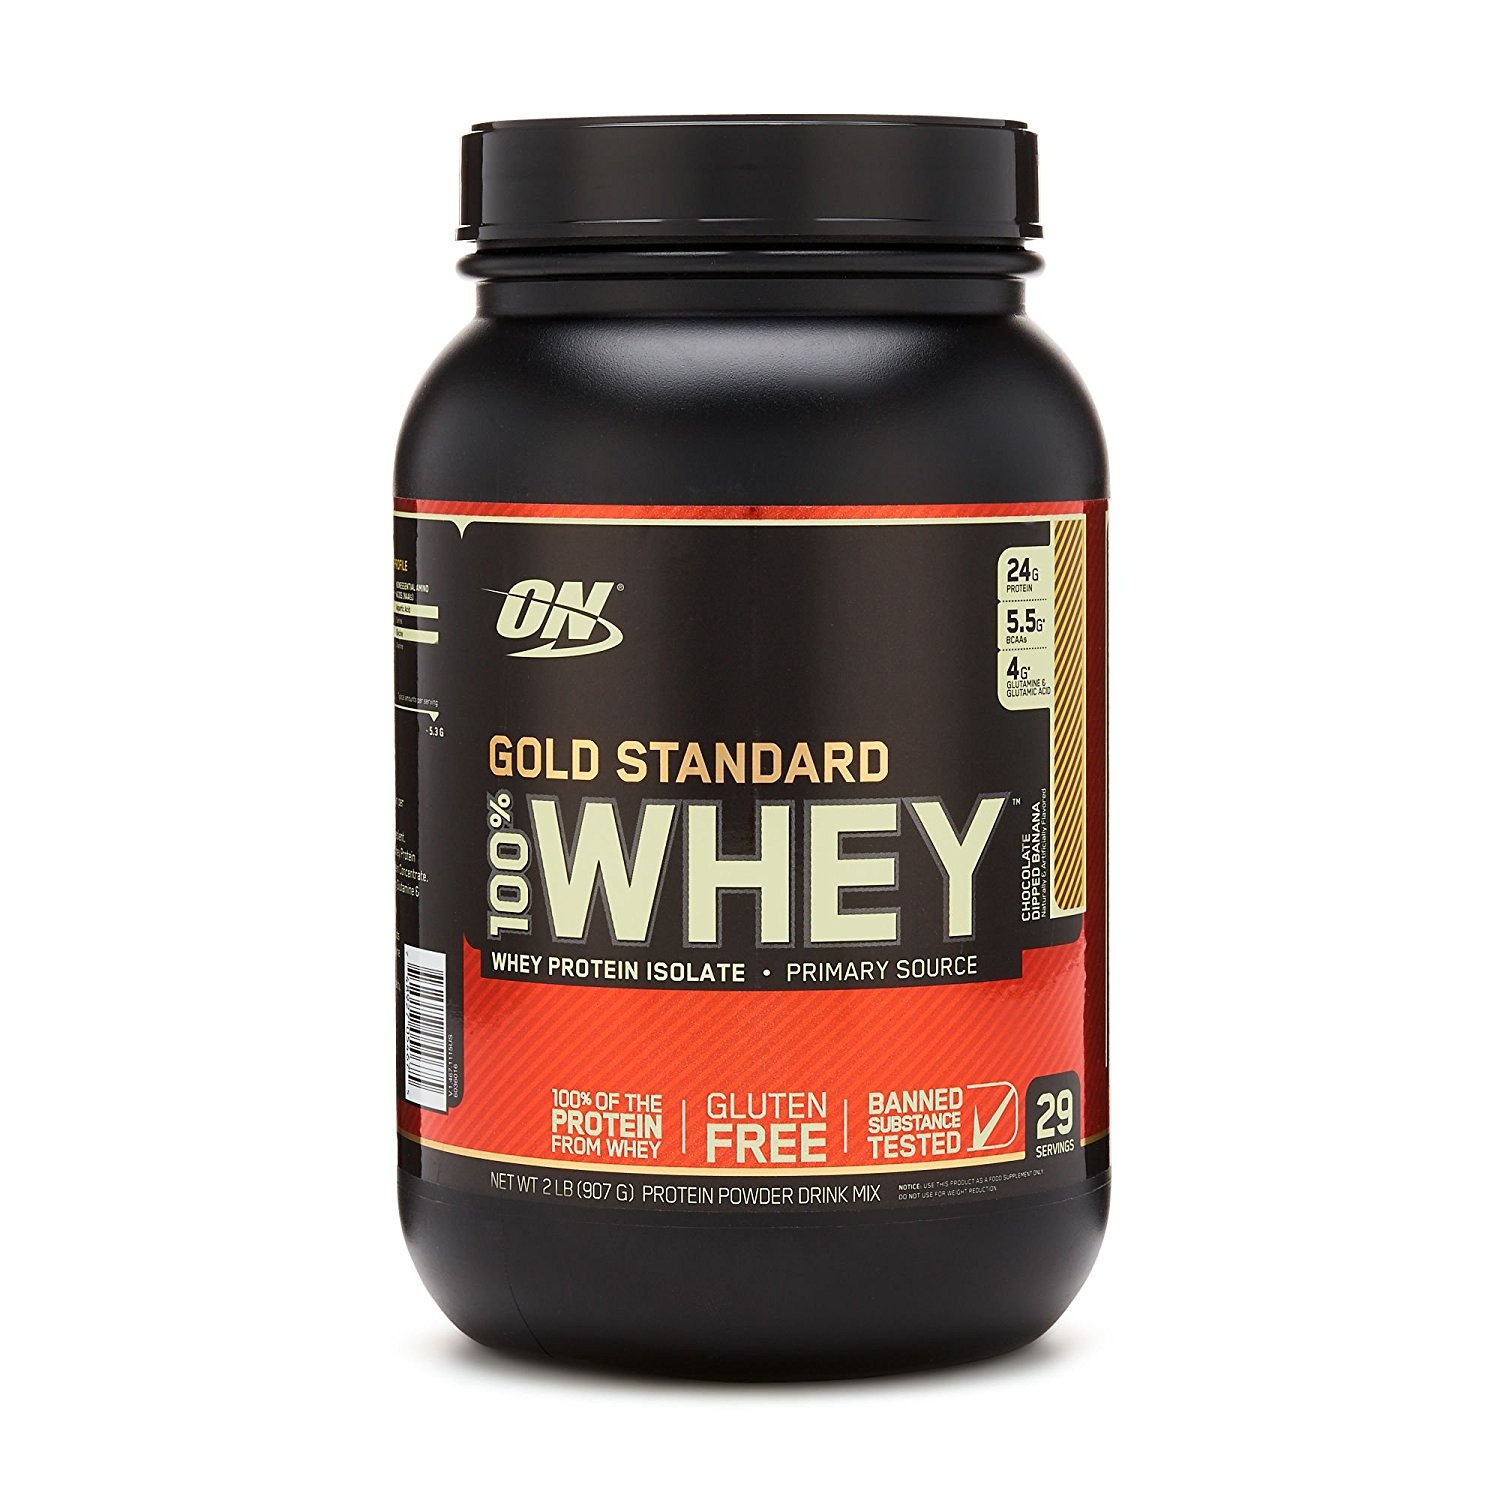 Endurance & Energy Bars, Drinks & Pills 100% Whey Gold Standard Schokolade Dip Bananen 0.9kg Vitamins & Dietary Supplements